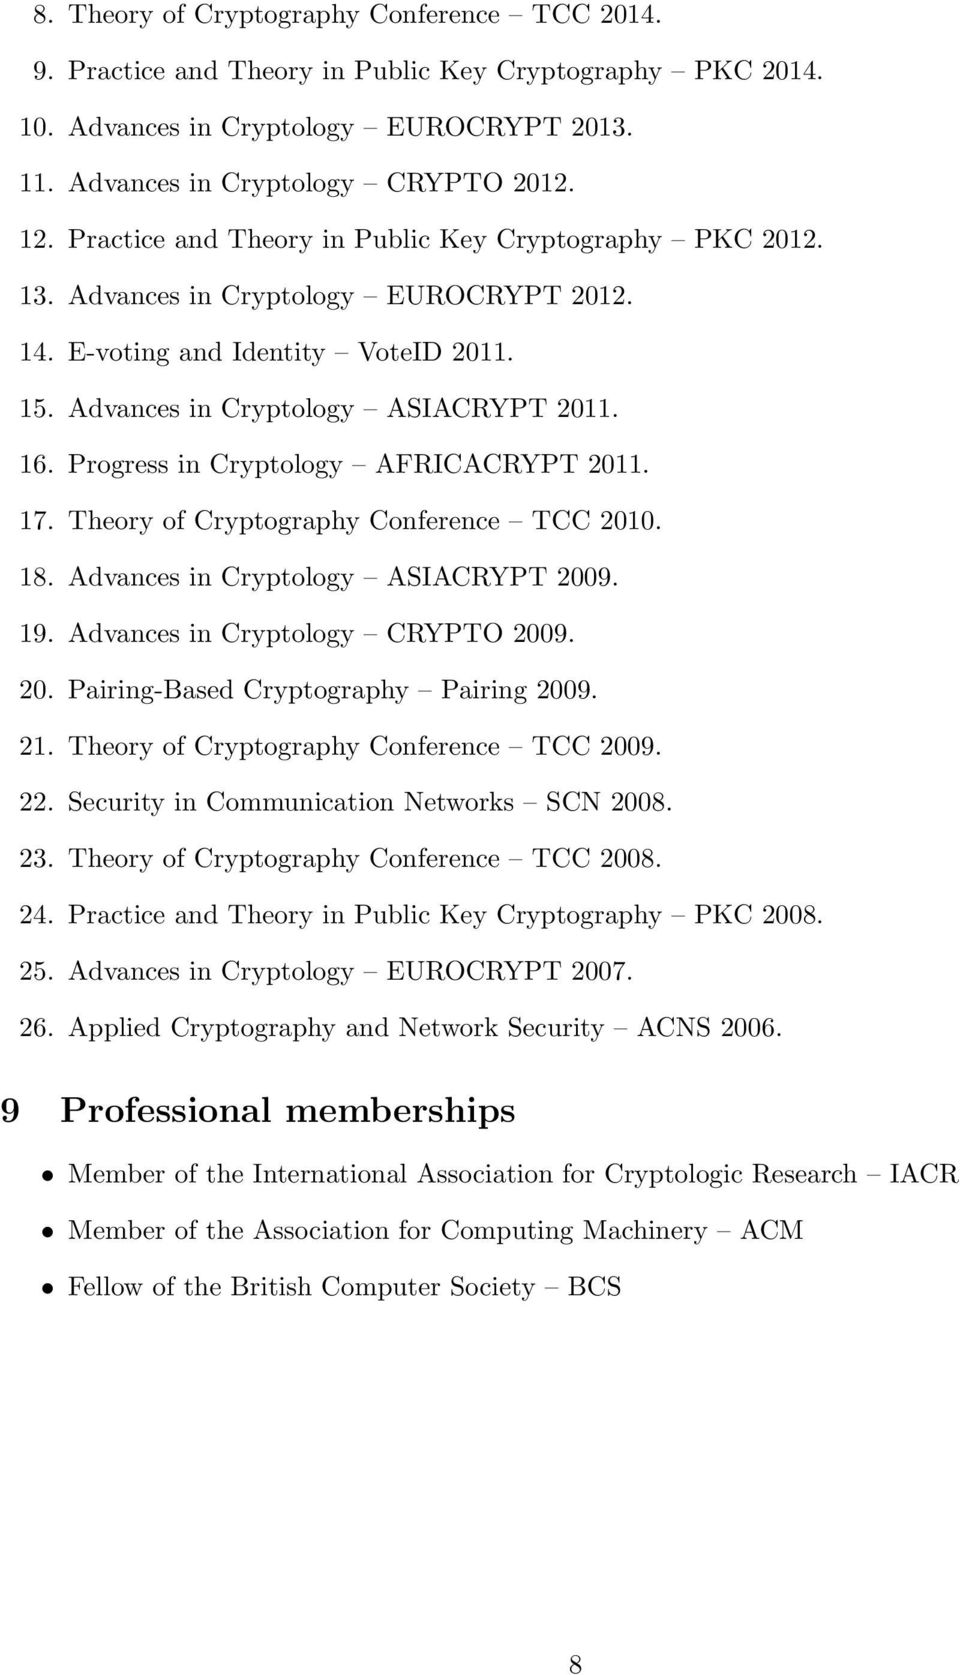 Progress in Cryptology AFRICACRYPT 2011. 17. Theory of Cryptography Conference TCC 2010. 18. Advances in Cryptology ASIACRYPT 2009. 19. Advances in Cryptology CRYPTO 2009. 20. Pairing-Based Cryptography Pairing 2009.